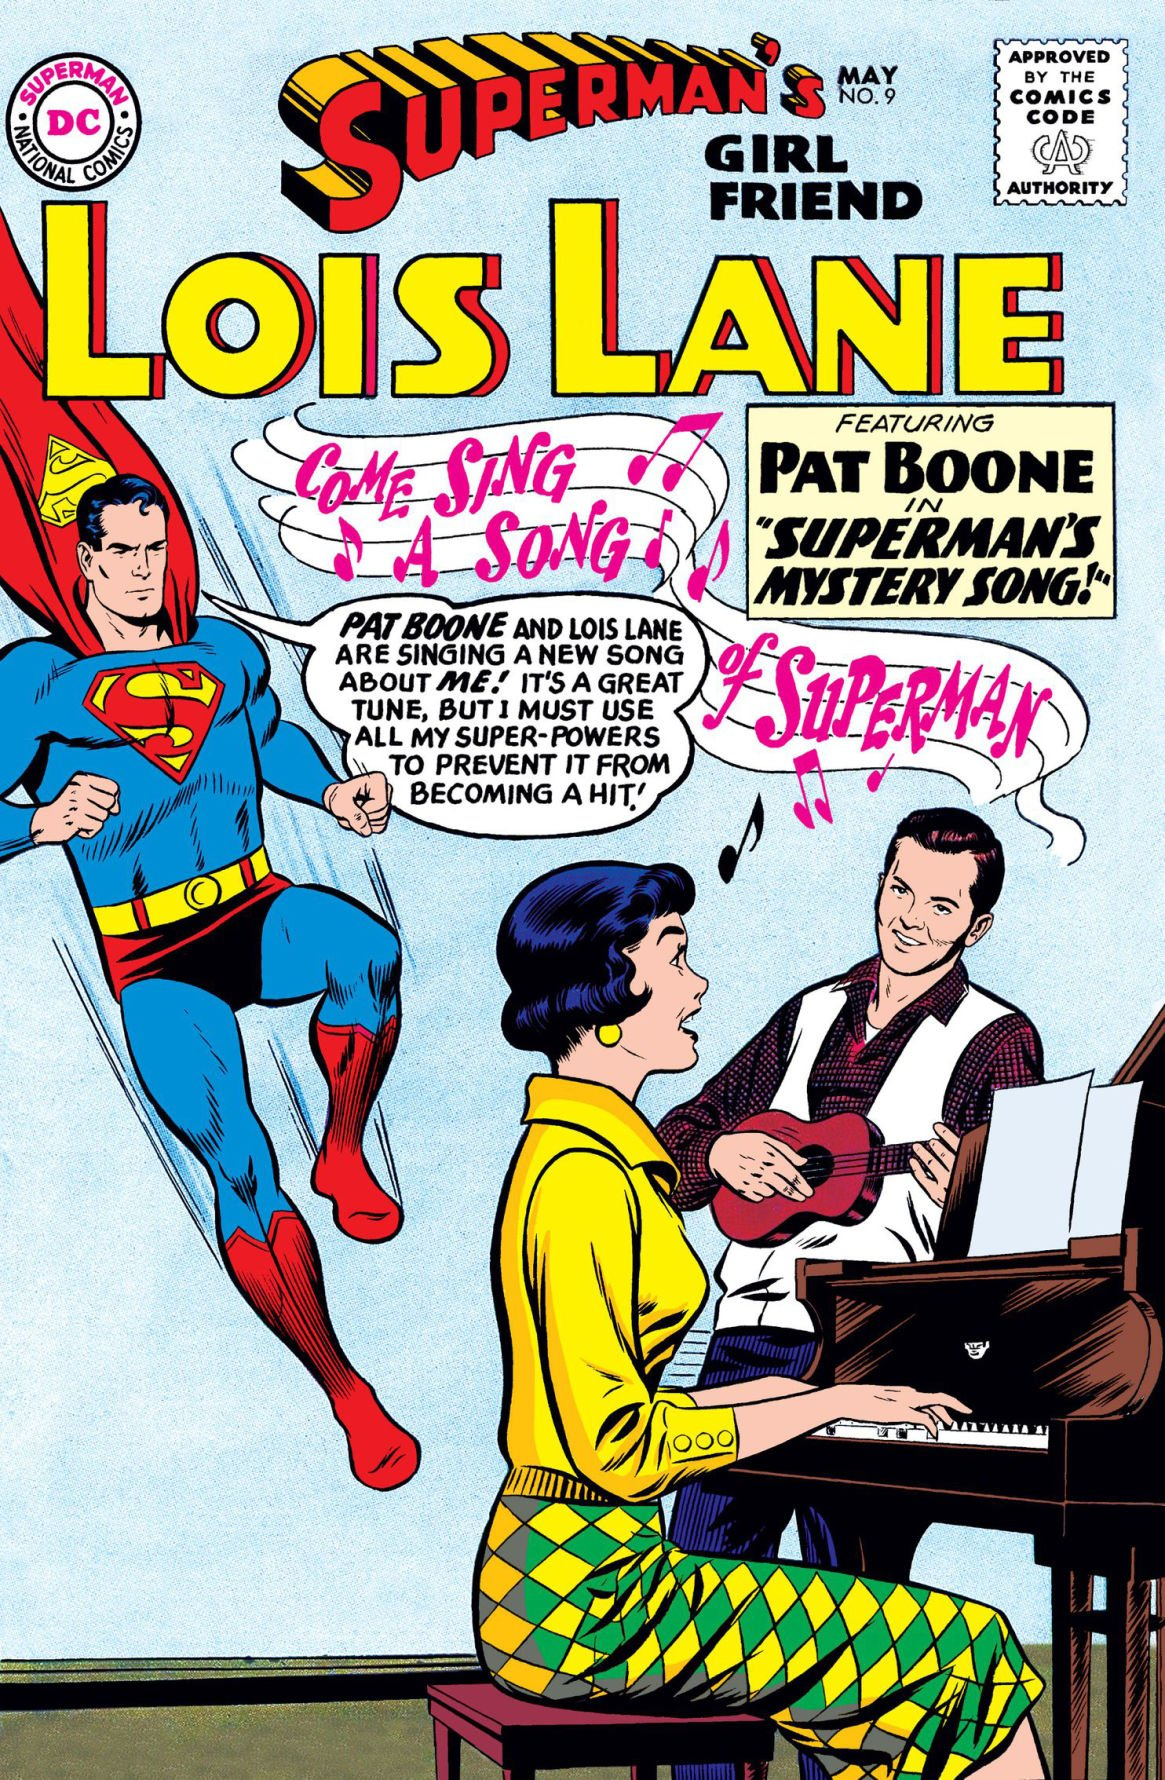 Lois Lane transforms to an 'enemy of the people'